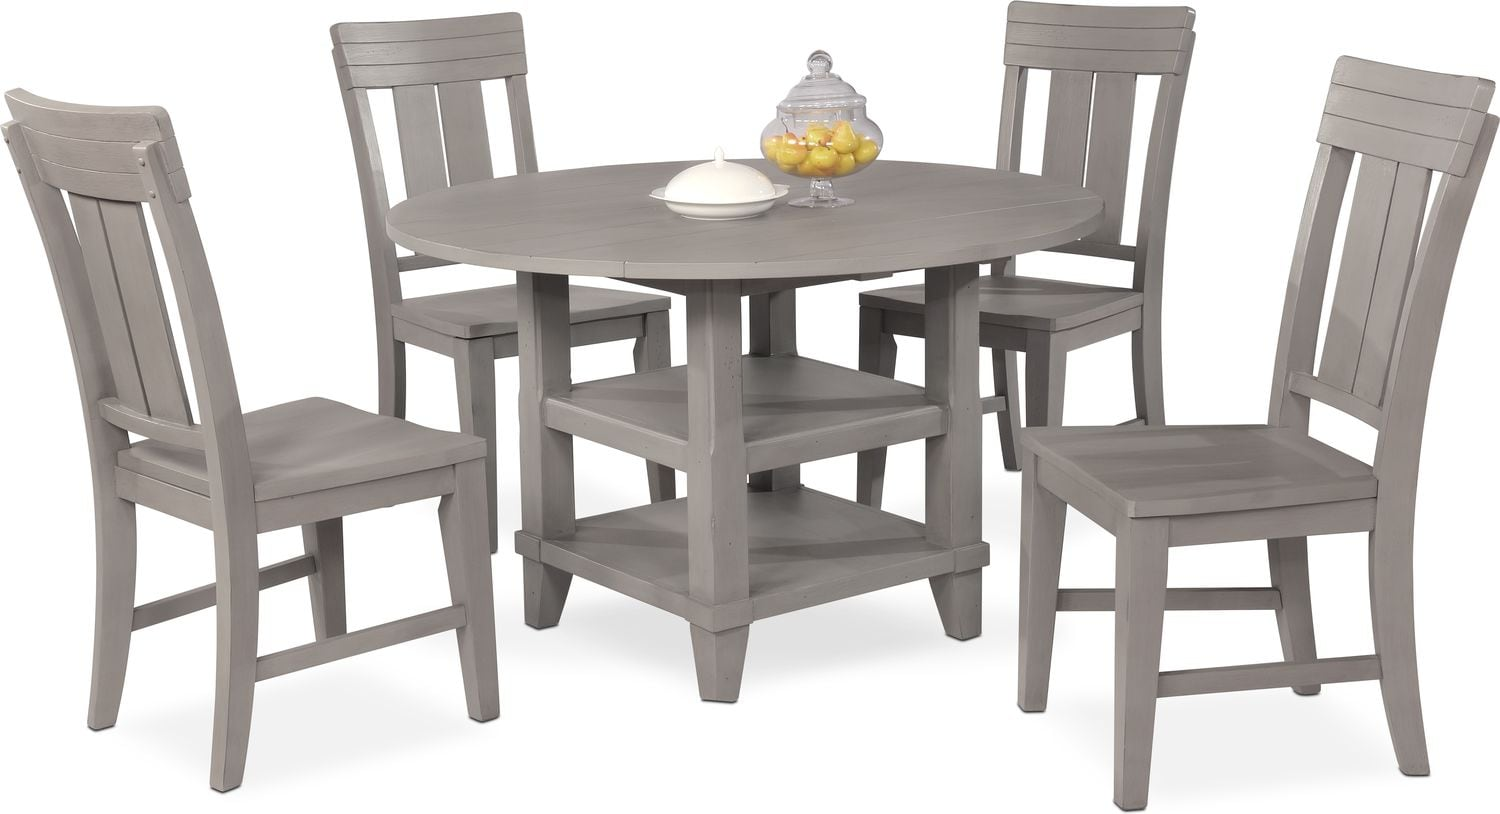 Round Back Dining Room Chairs New Haven Round Dining Table And 4 Slat Back Side Chairs